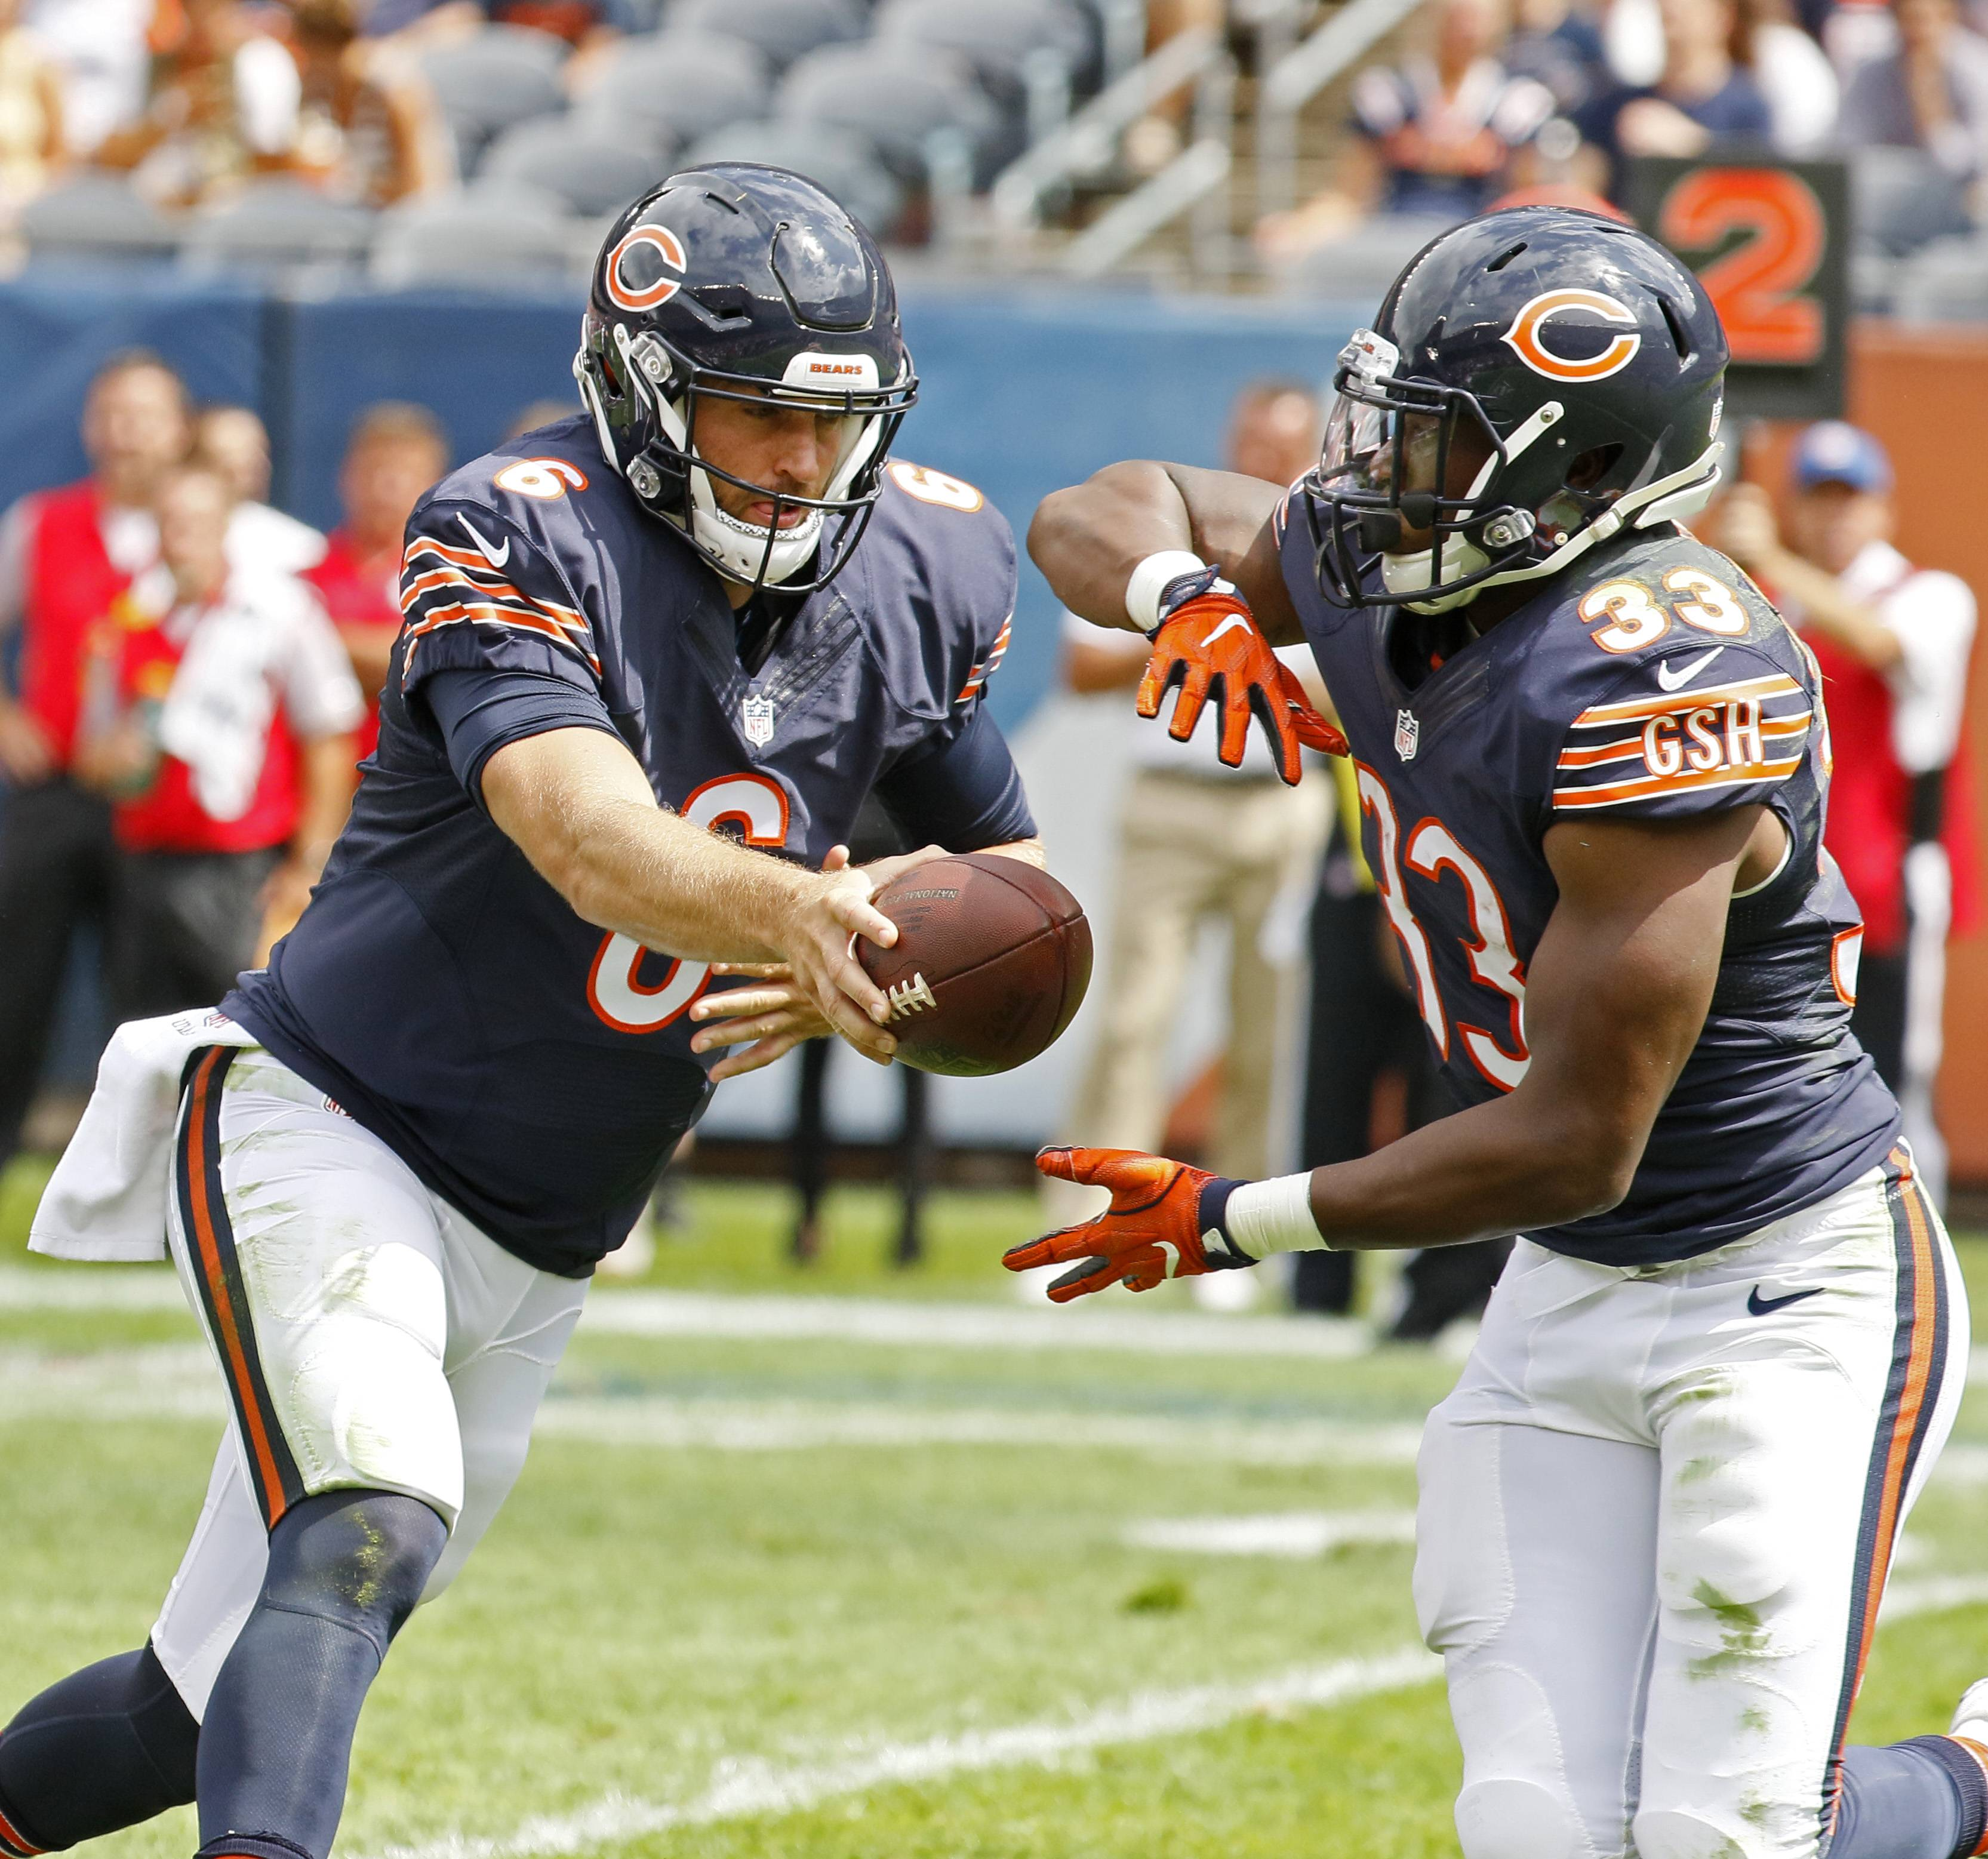 Chicago Bears quarterback Jay Cutler hands the ball to Jeremy Langford against the Kansas City Chiefs during a preseason game, Saturday, August 27, 2016 at Soldier Field.